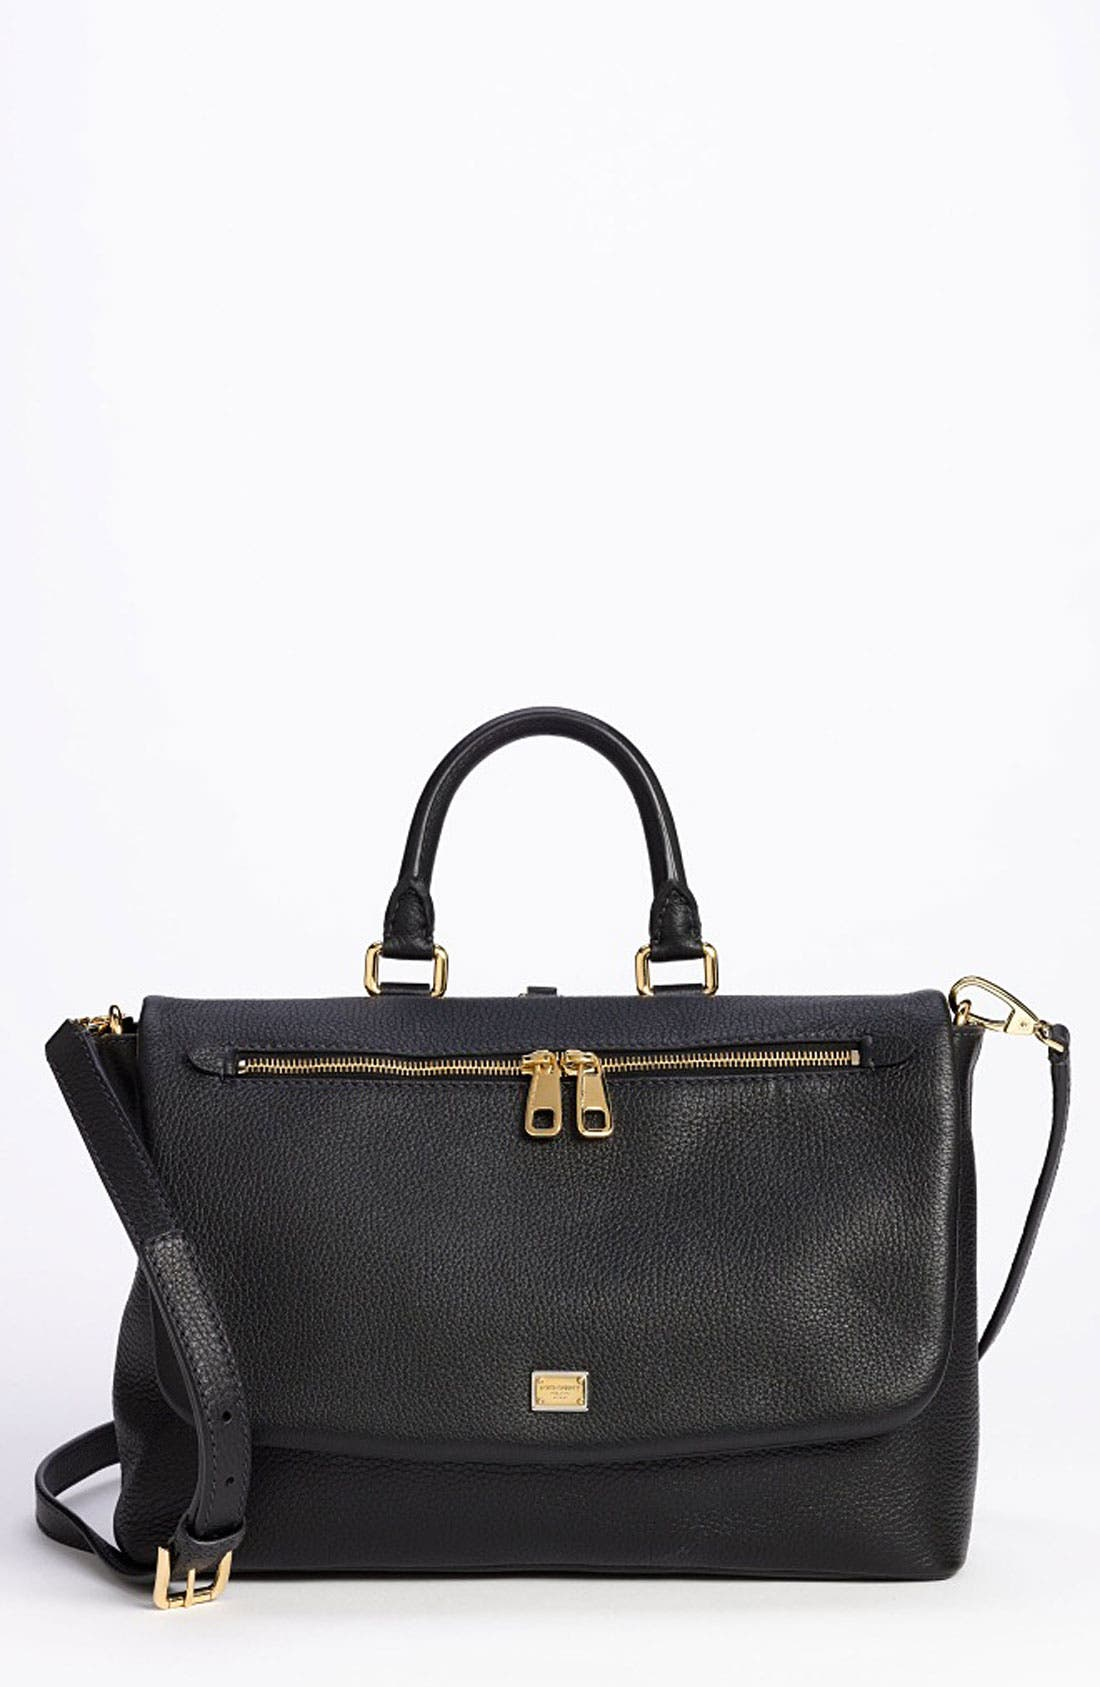 Main Image - Dolce&Gabbana 'Miss Emma' Leather Satchel